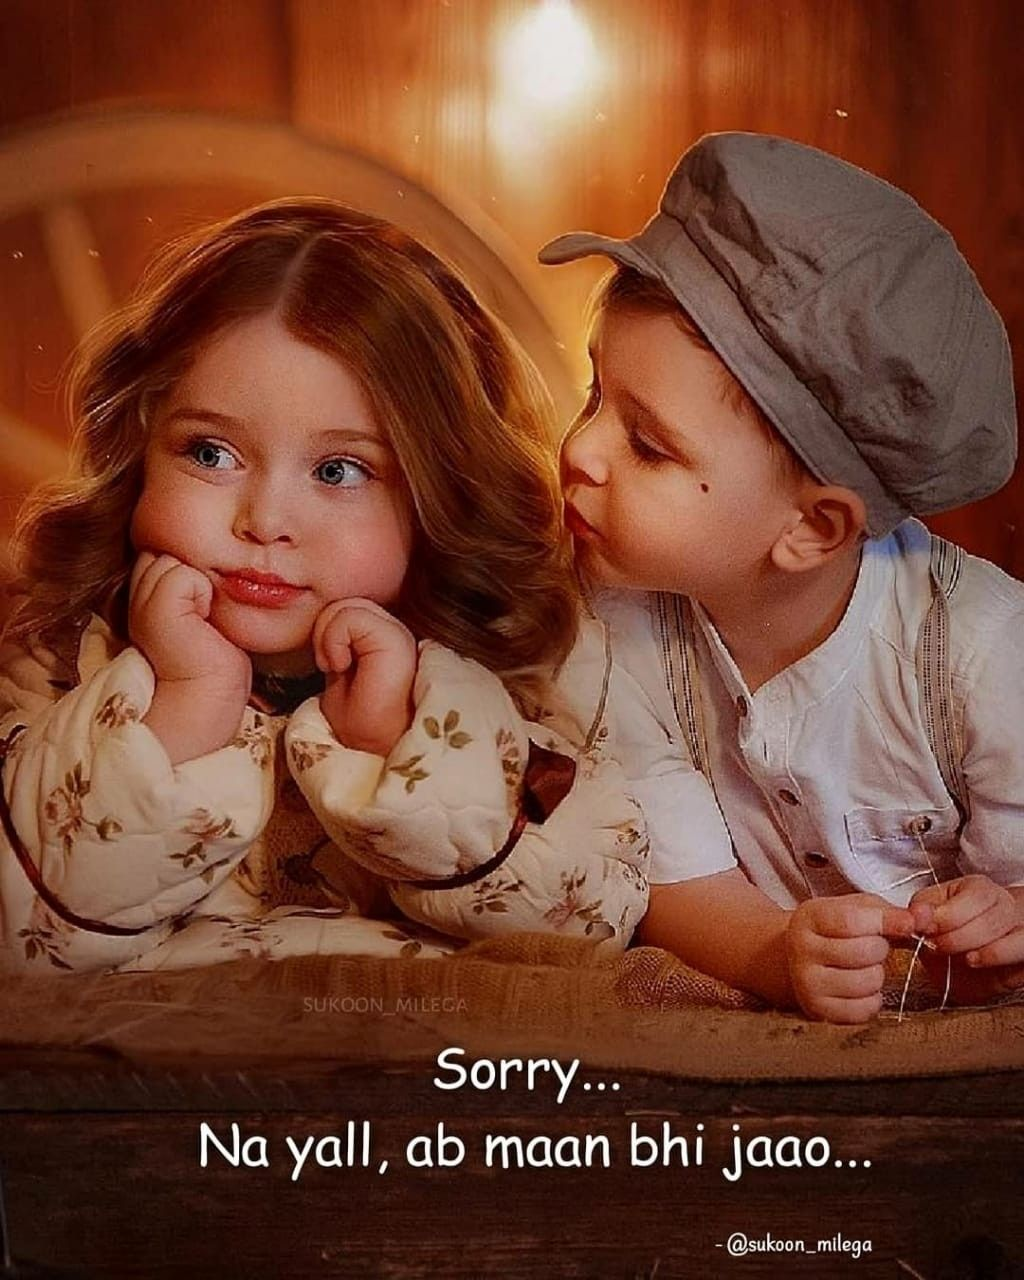 Cute Baby Couple Images With Quotes : couple, images, quotes, Follow, Quotes,, Funny, Romantic, Quotes